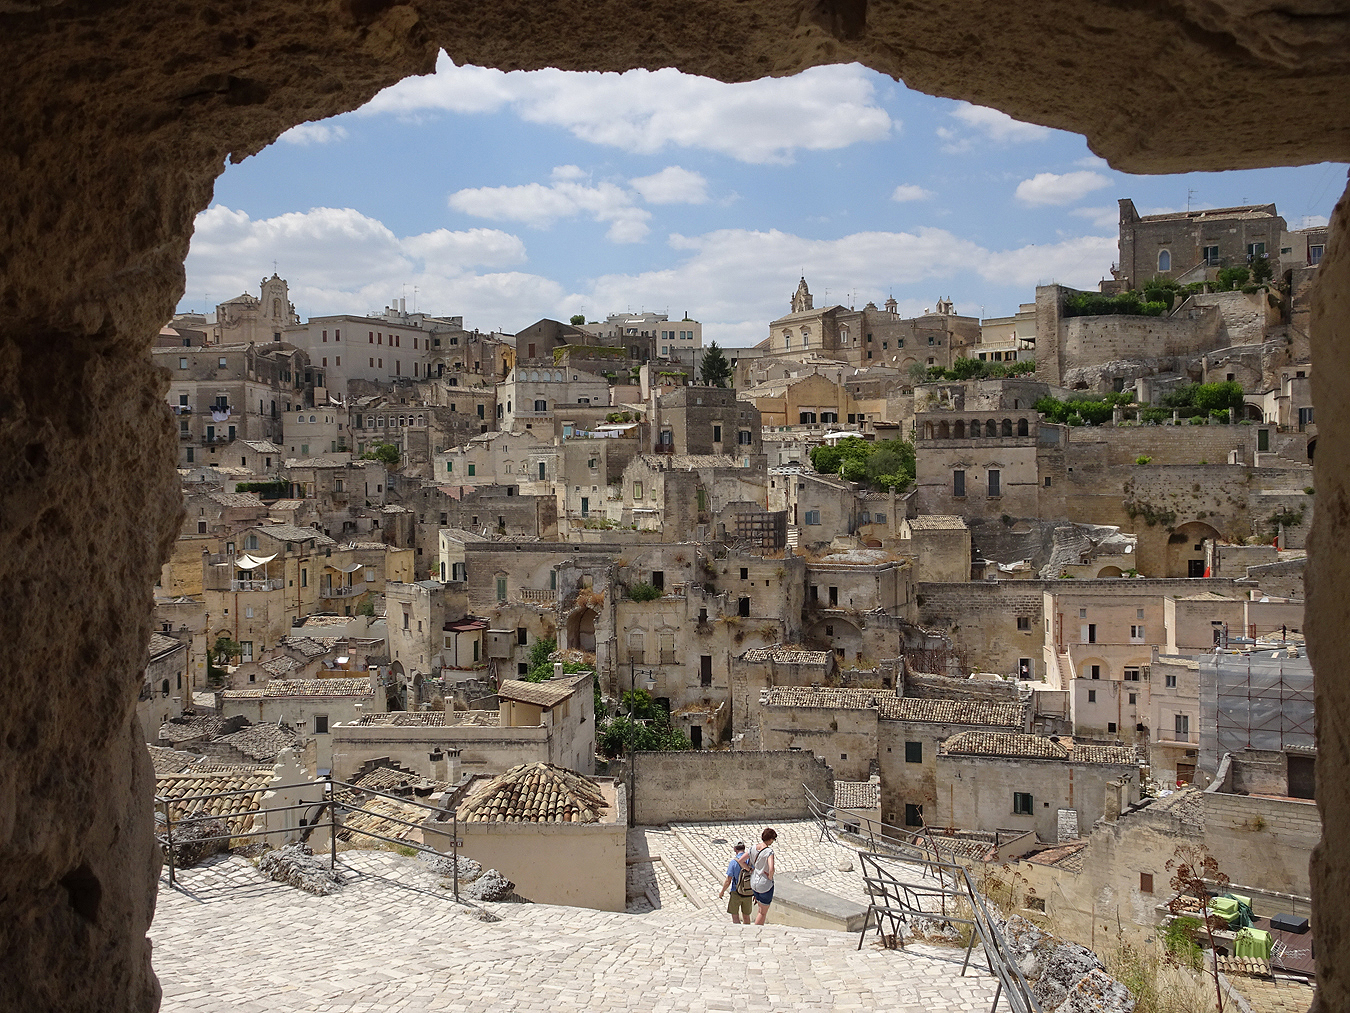 Tony_Ward_Studio_Picture_of_the_Day_Luca_Pioltelli_Italy_old_town